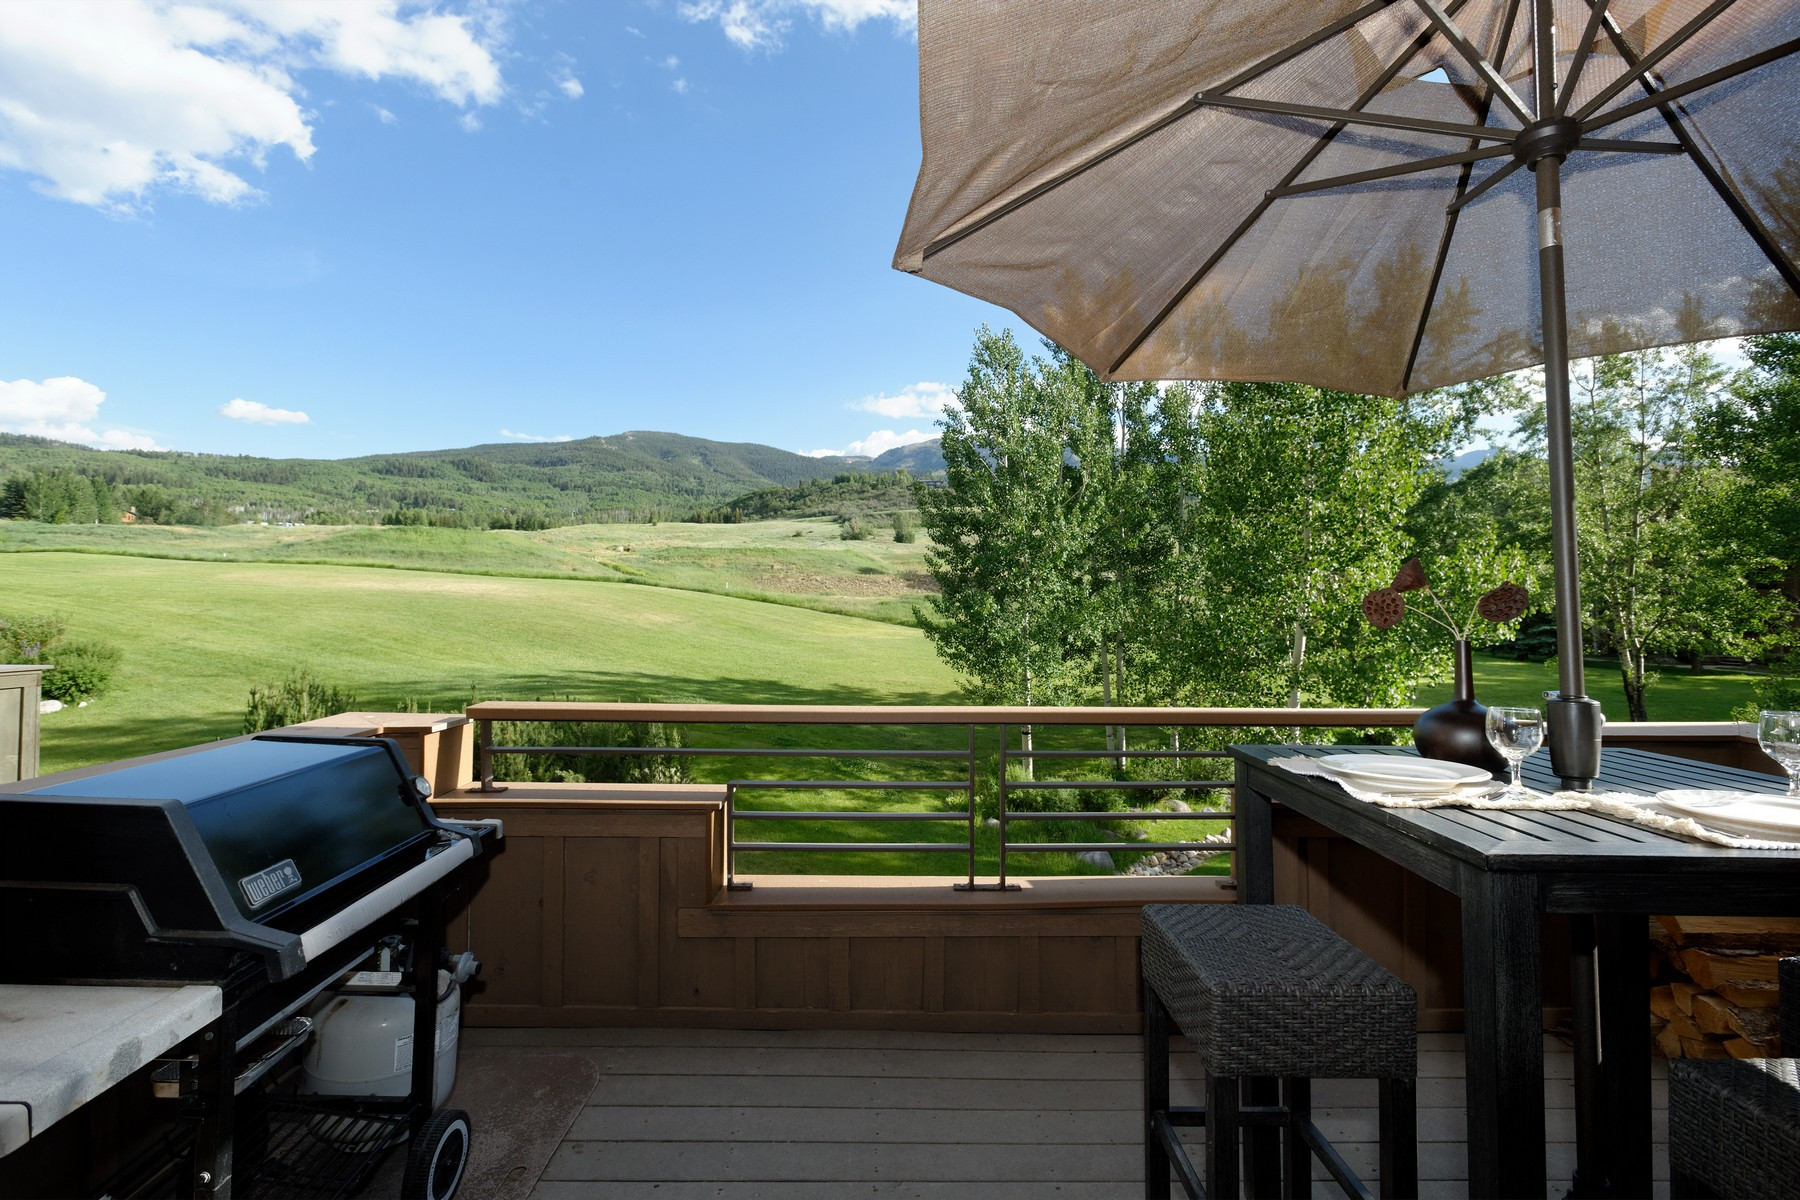 Кондоминиум для того Продажа на Best Golf and Ski Location 150 Snowmass Club Circle Unit # 1521 Snowmass Village, Колорадо, 81615 Соединенные Штаты